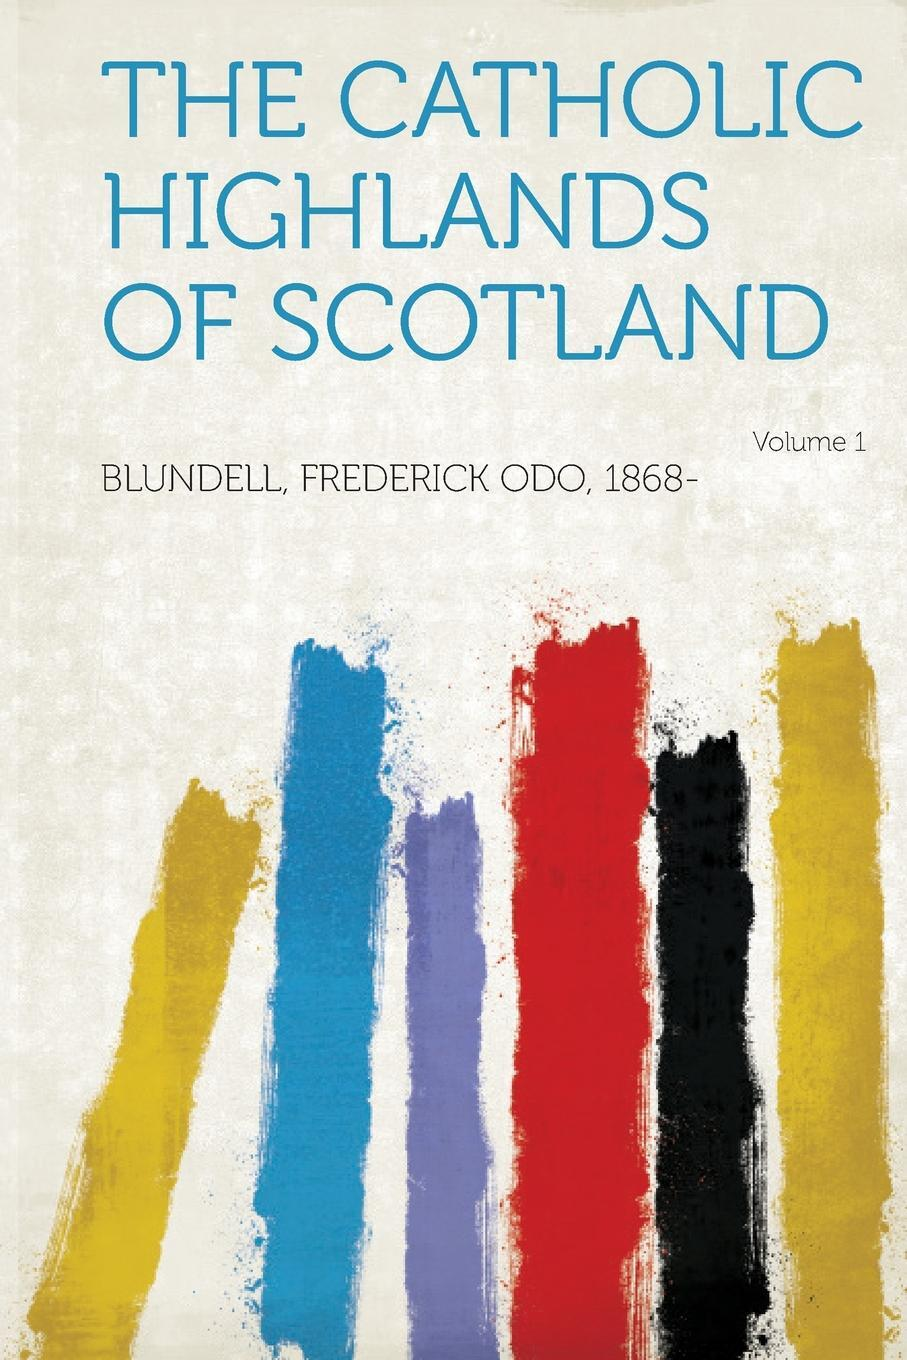 The Catholic Highlands of Scotland Volume 1